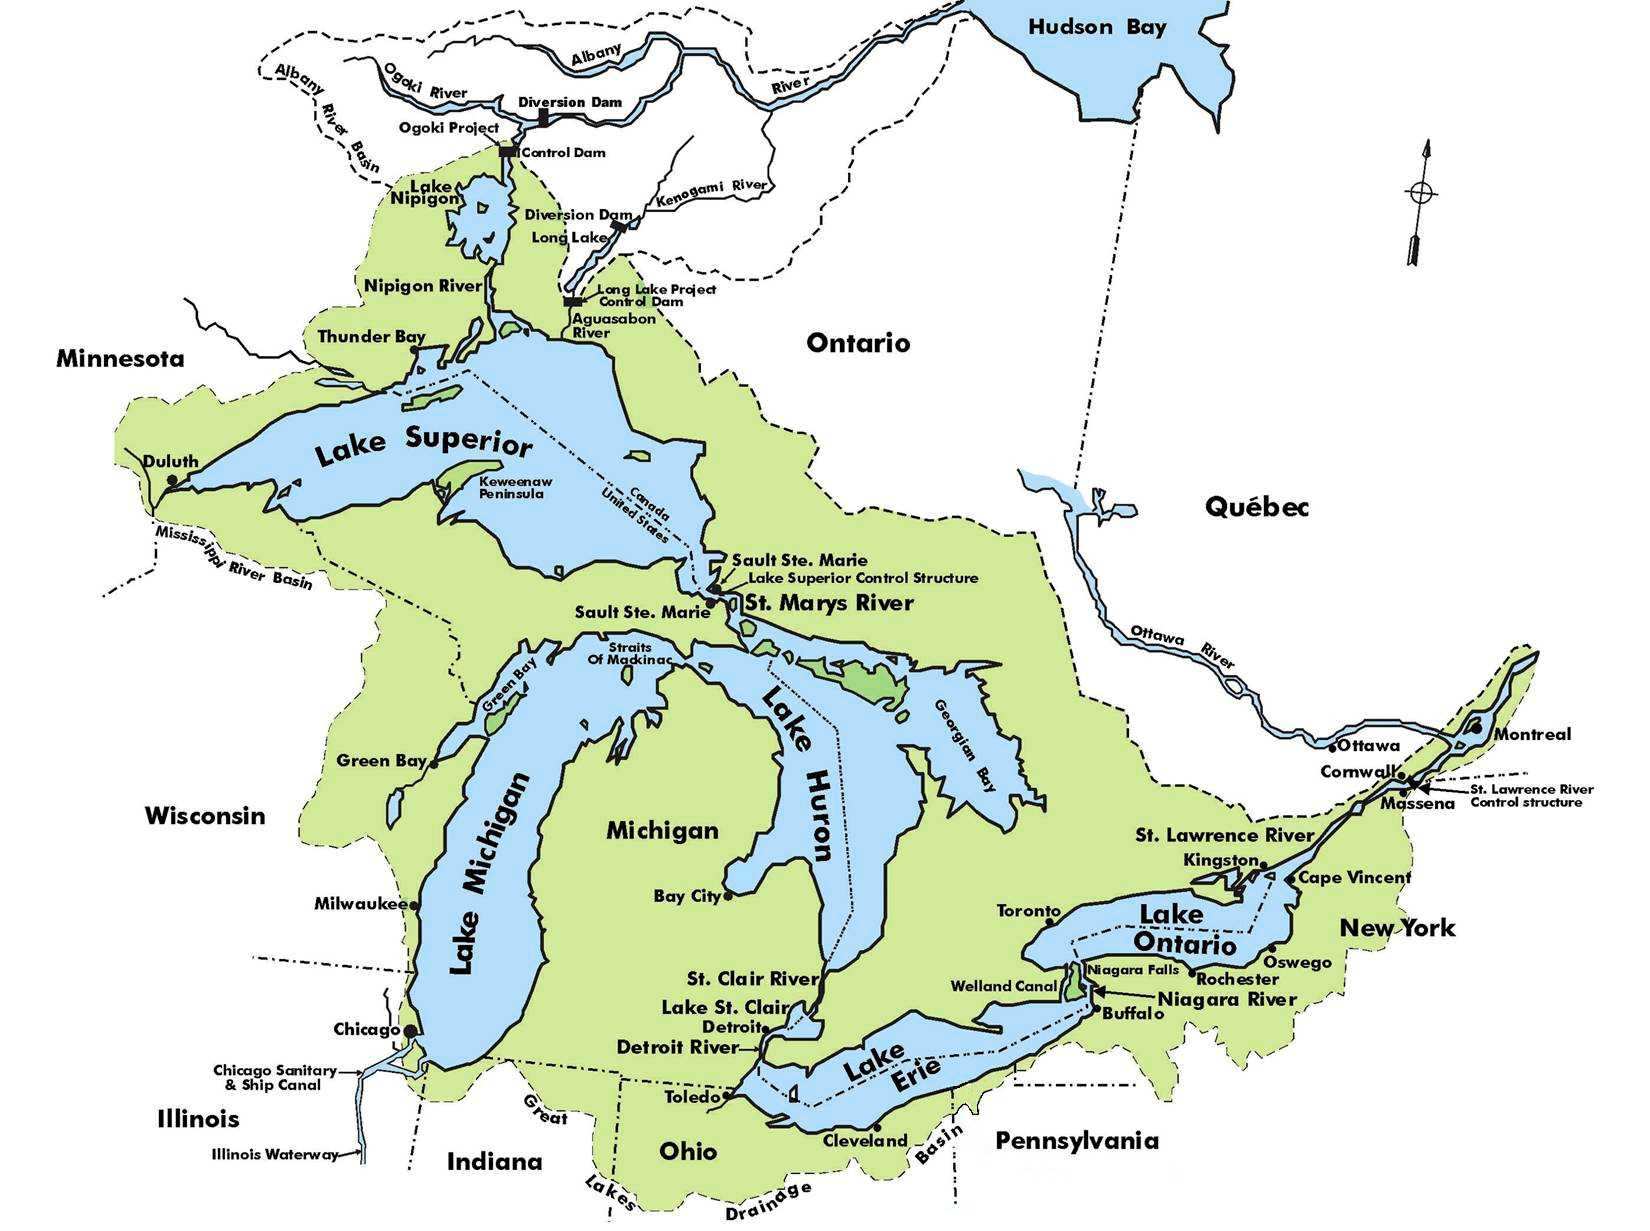 Map Of Rivers In The Us - Longest river in the us map